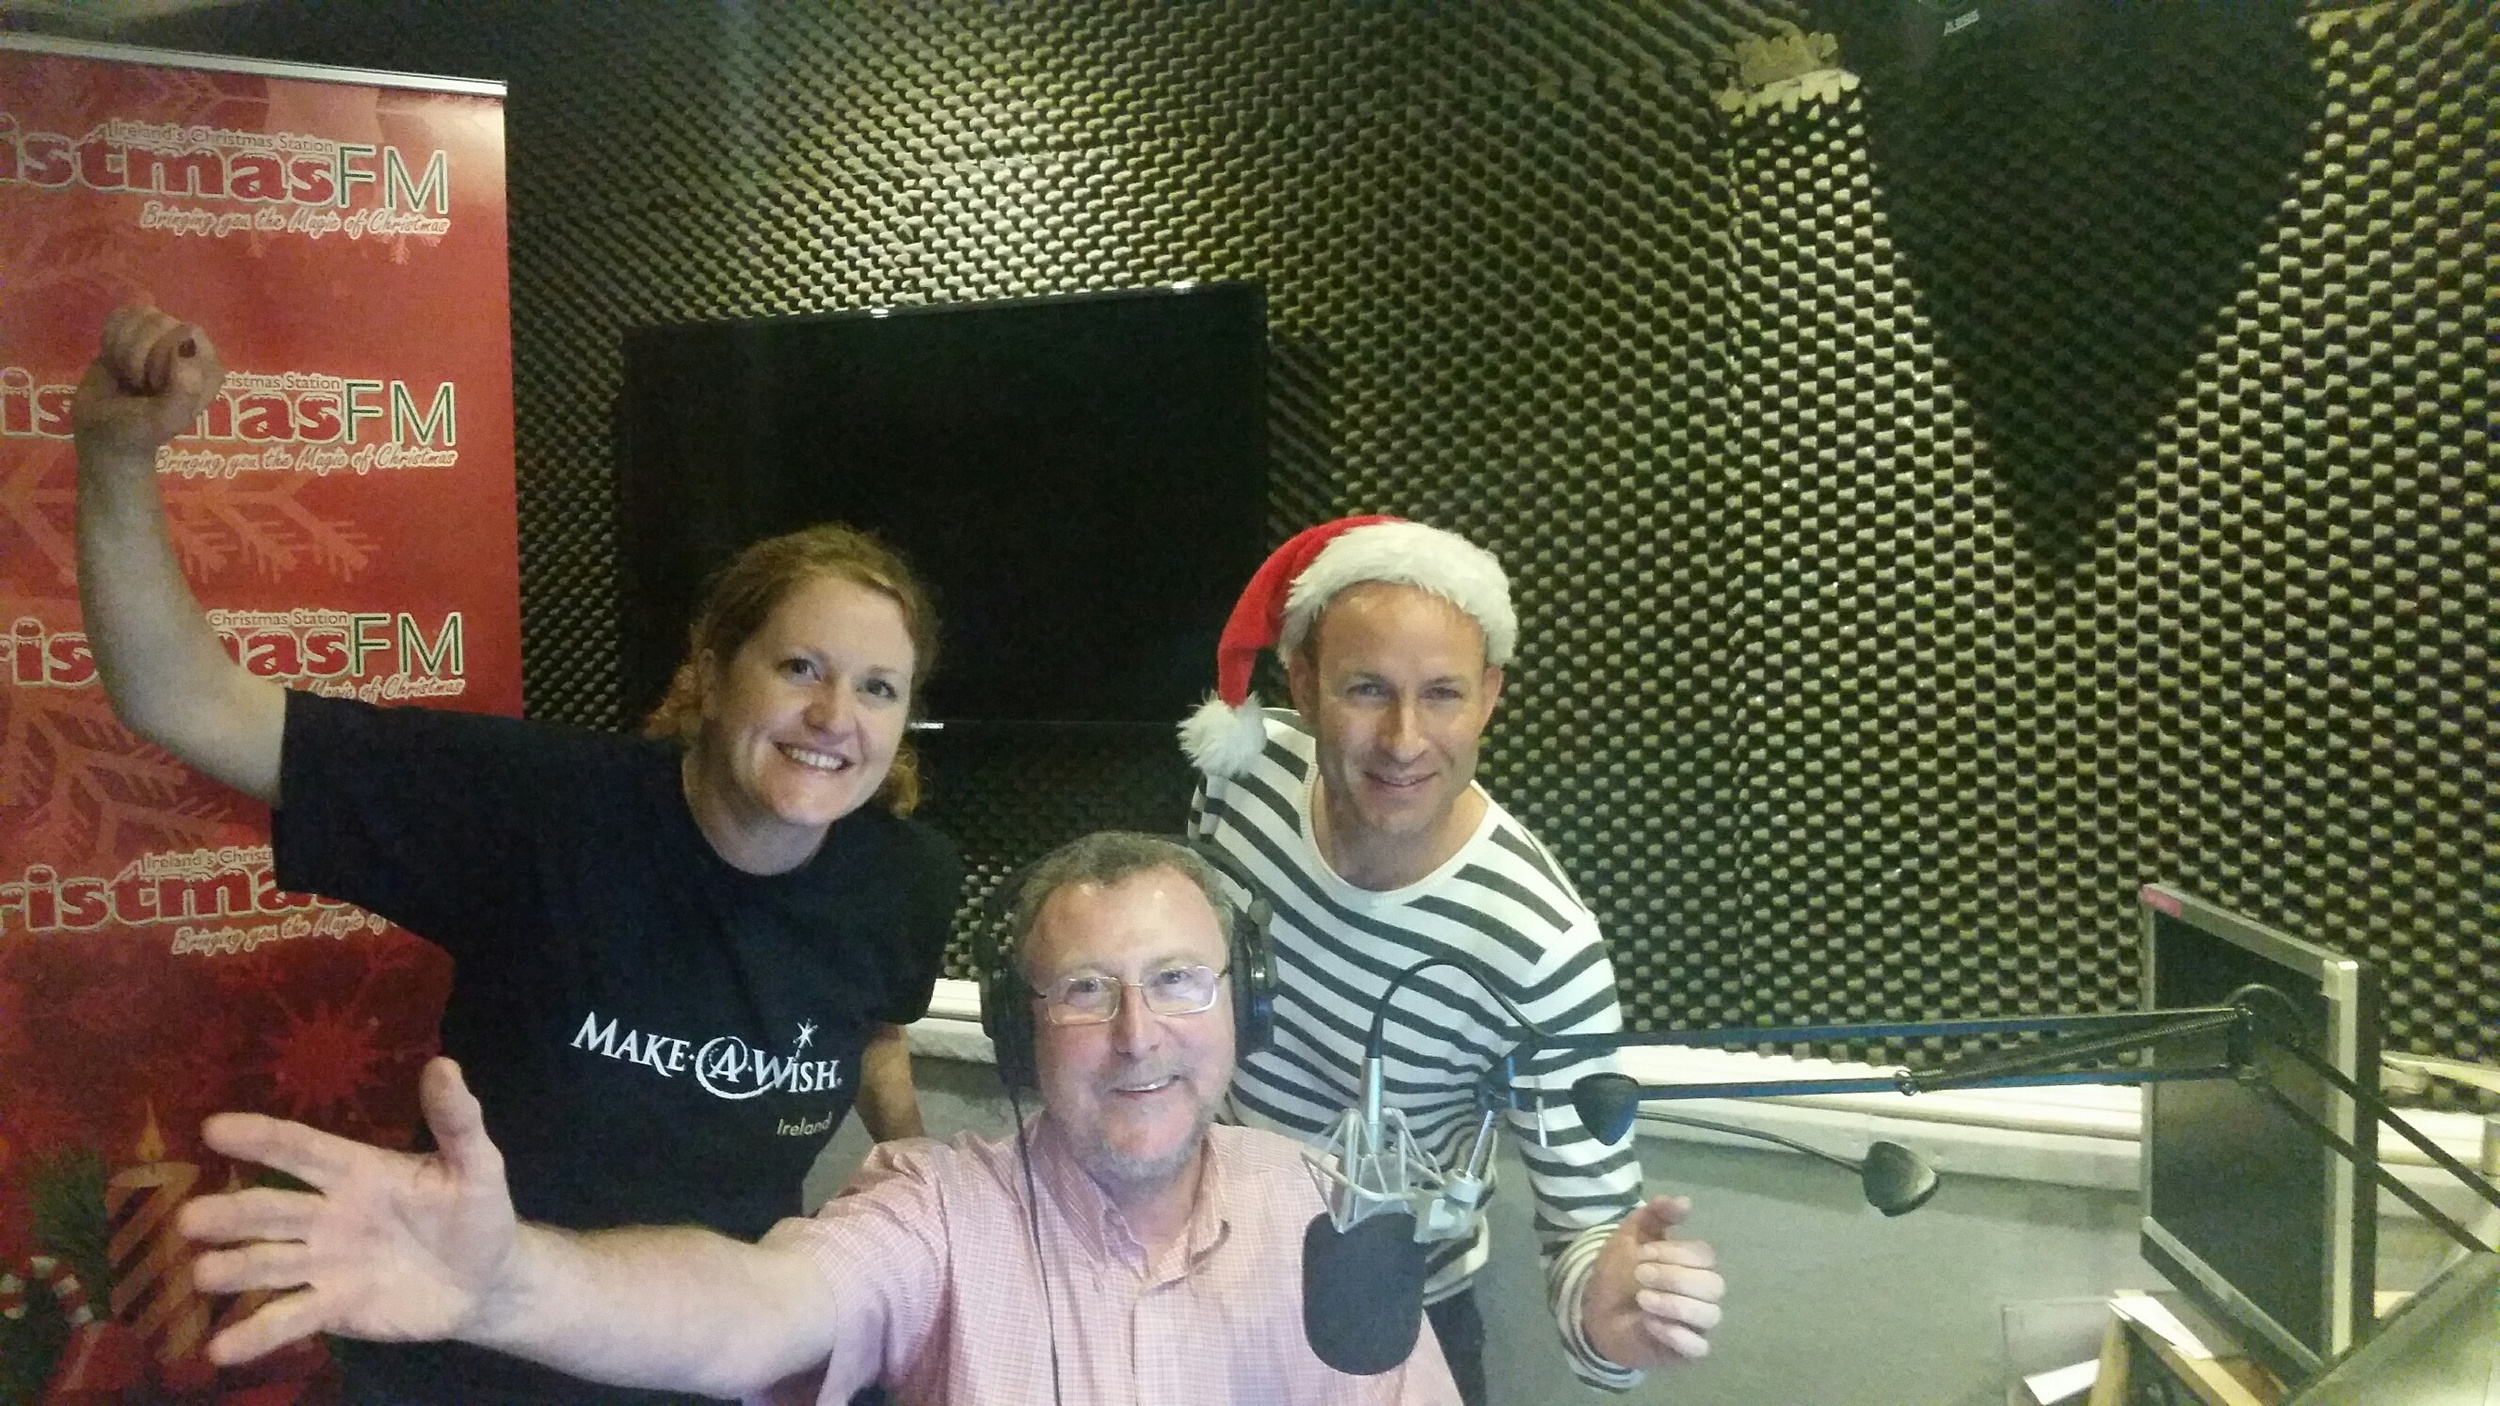 Garvan Rigby (in the hat!) with Make A Wish Ireland and Christmas FM in the studio.